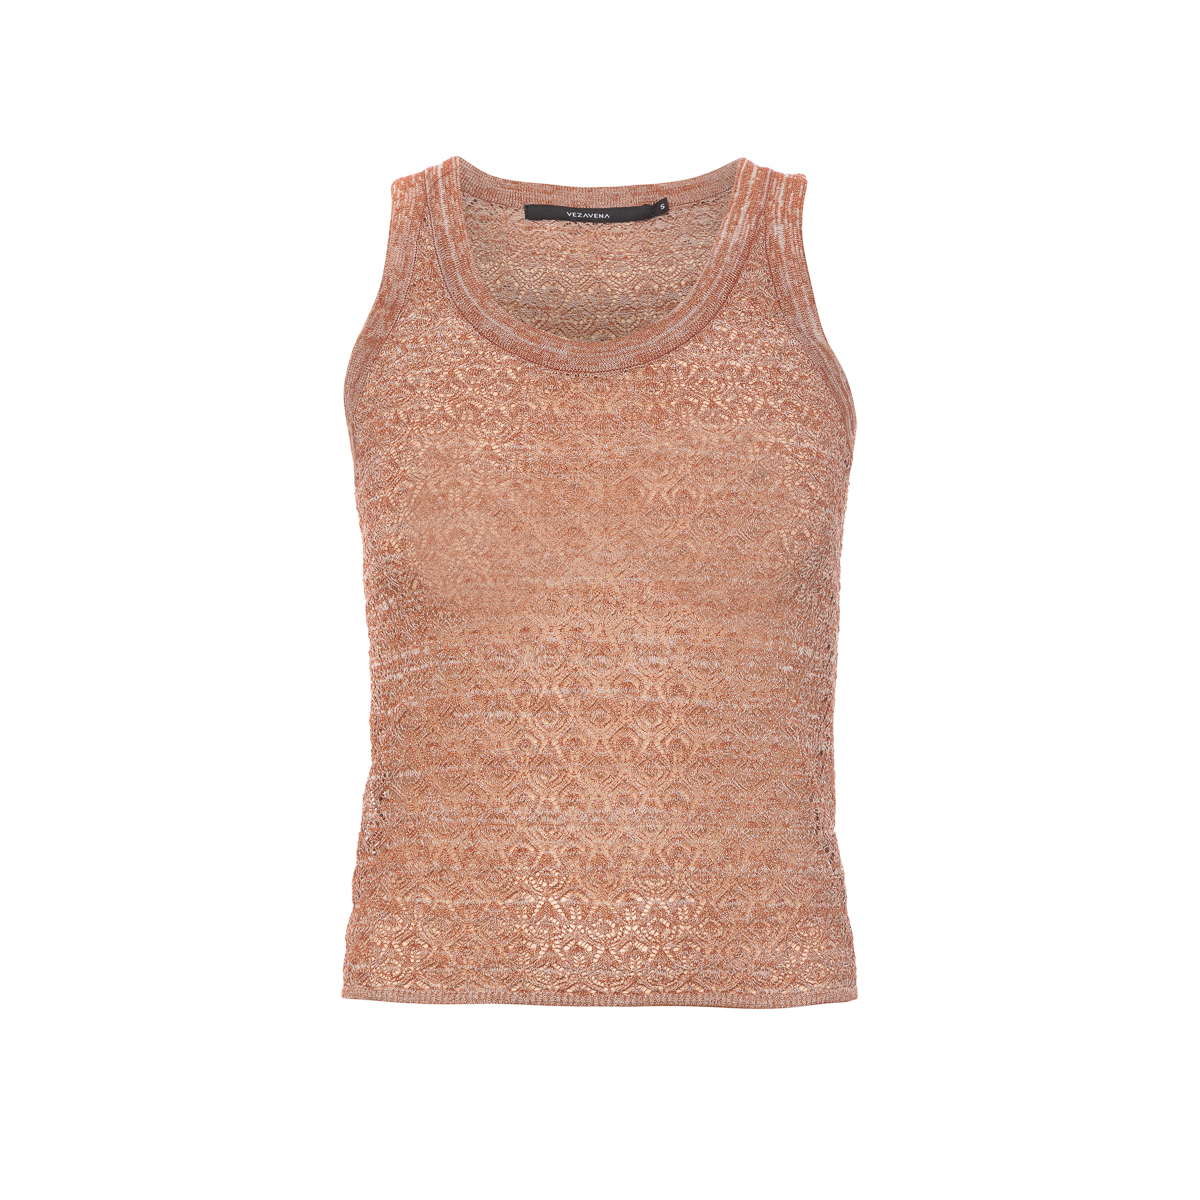 Knit Lace Top